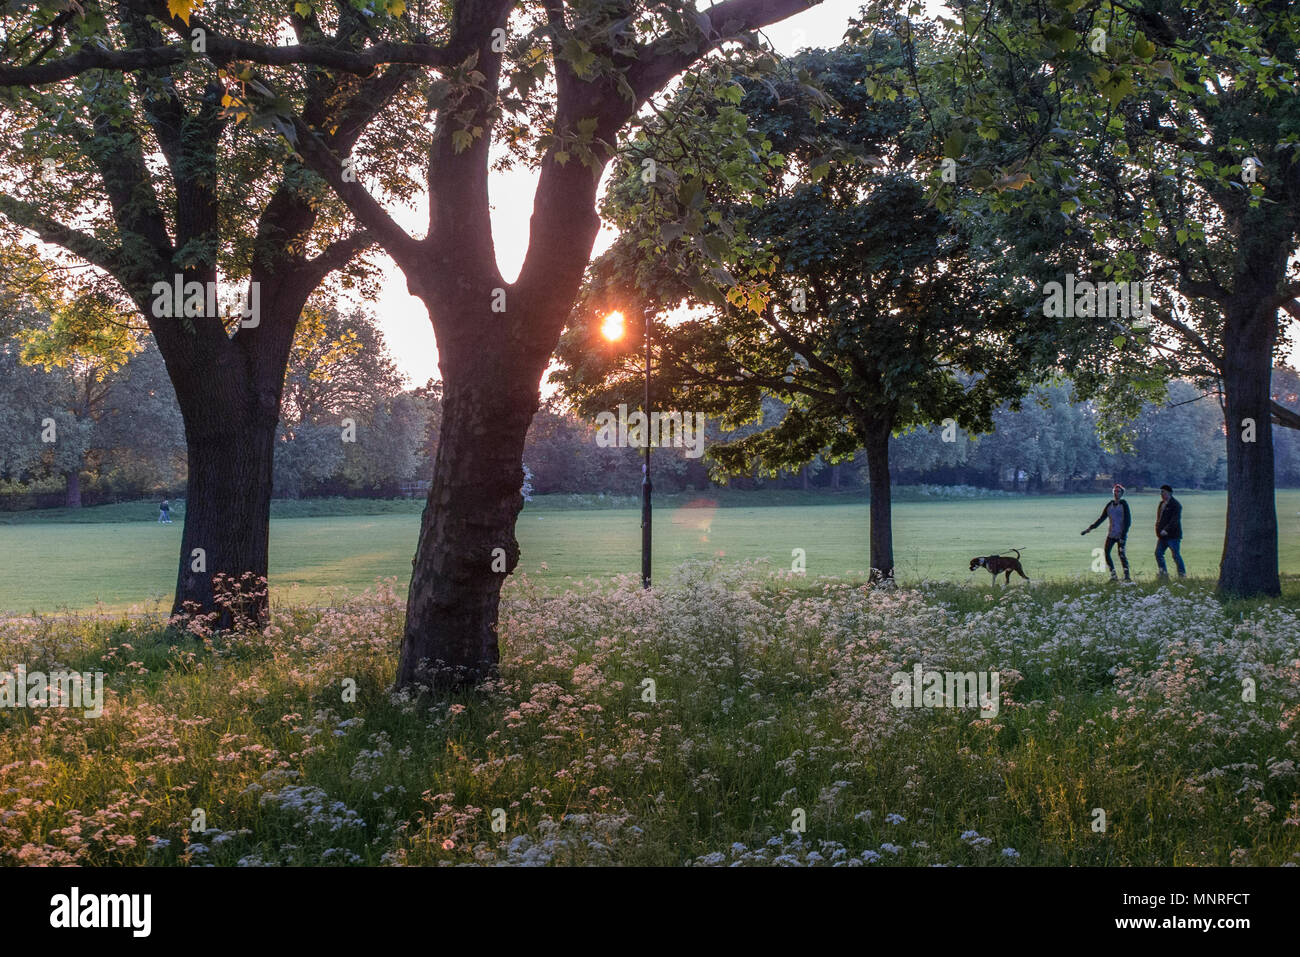 Taking the dog for a walk on a summers evening in a London park - Stock Image